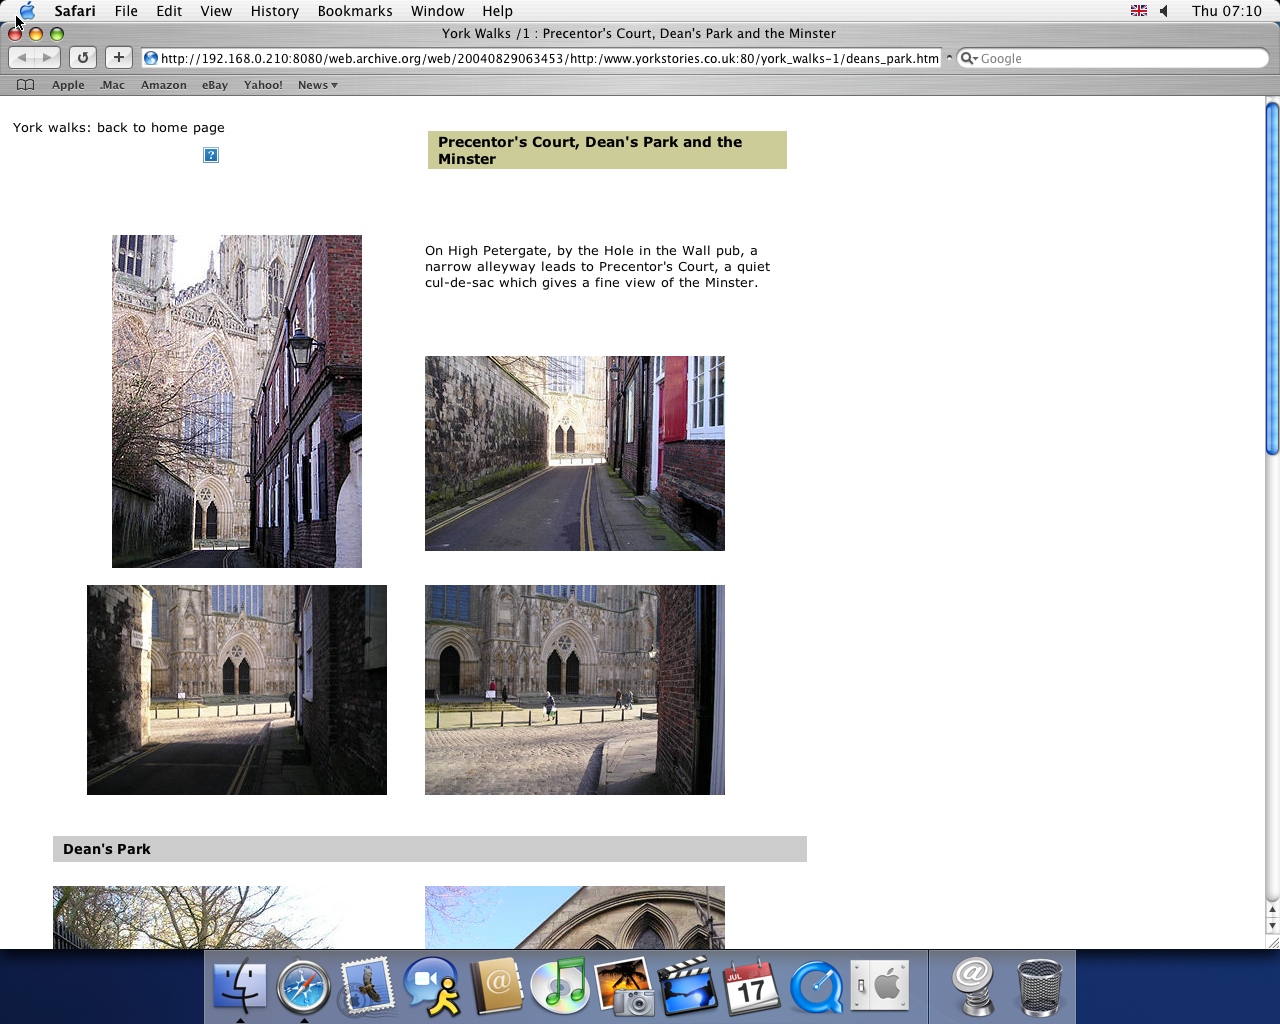 OS X 10.3 PPC with Safari 1.1 displaying a page from York Stories archived at August 29, 2004 at 06:34:53